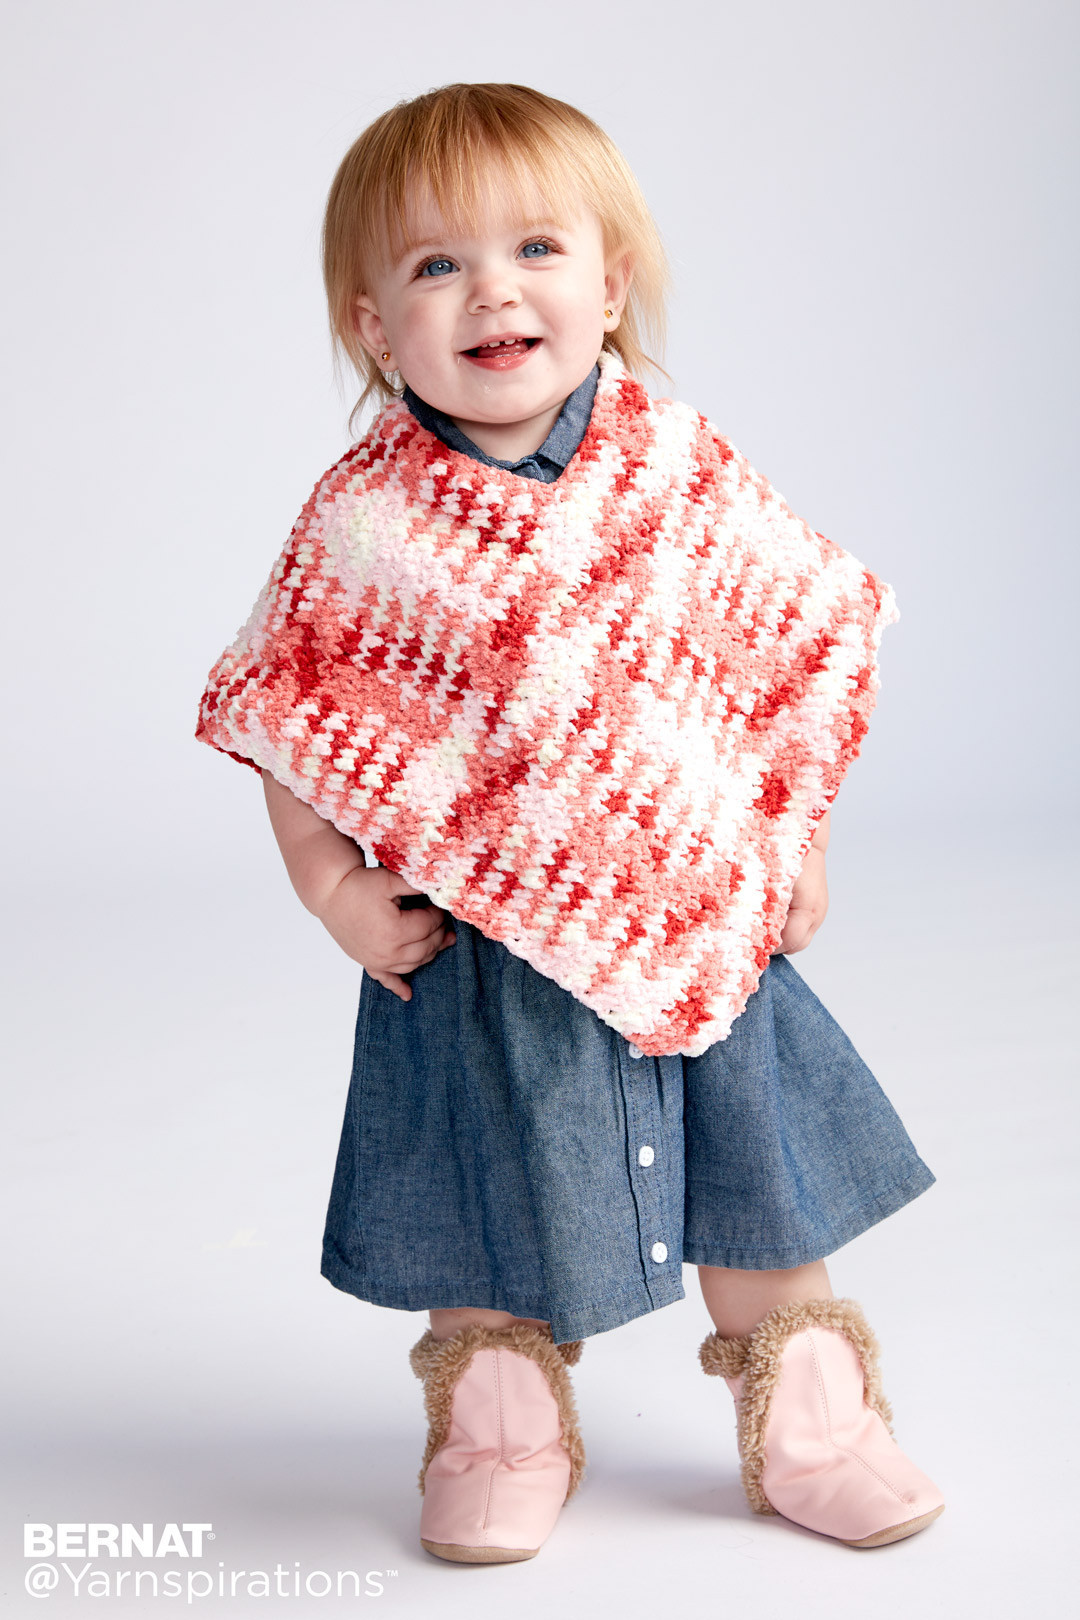 Crochet Child Poncho New Bernat Simple Crochet Baby Poncho Crochet Pattern Of Crochet Child Poncho Fresh Easy Poncho to Crochet with Puff Stitch Rows